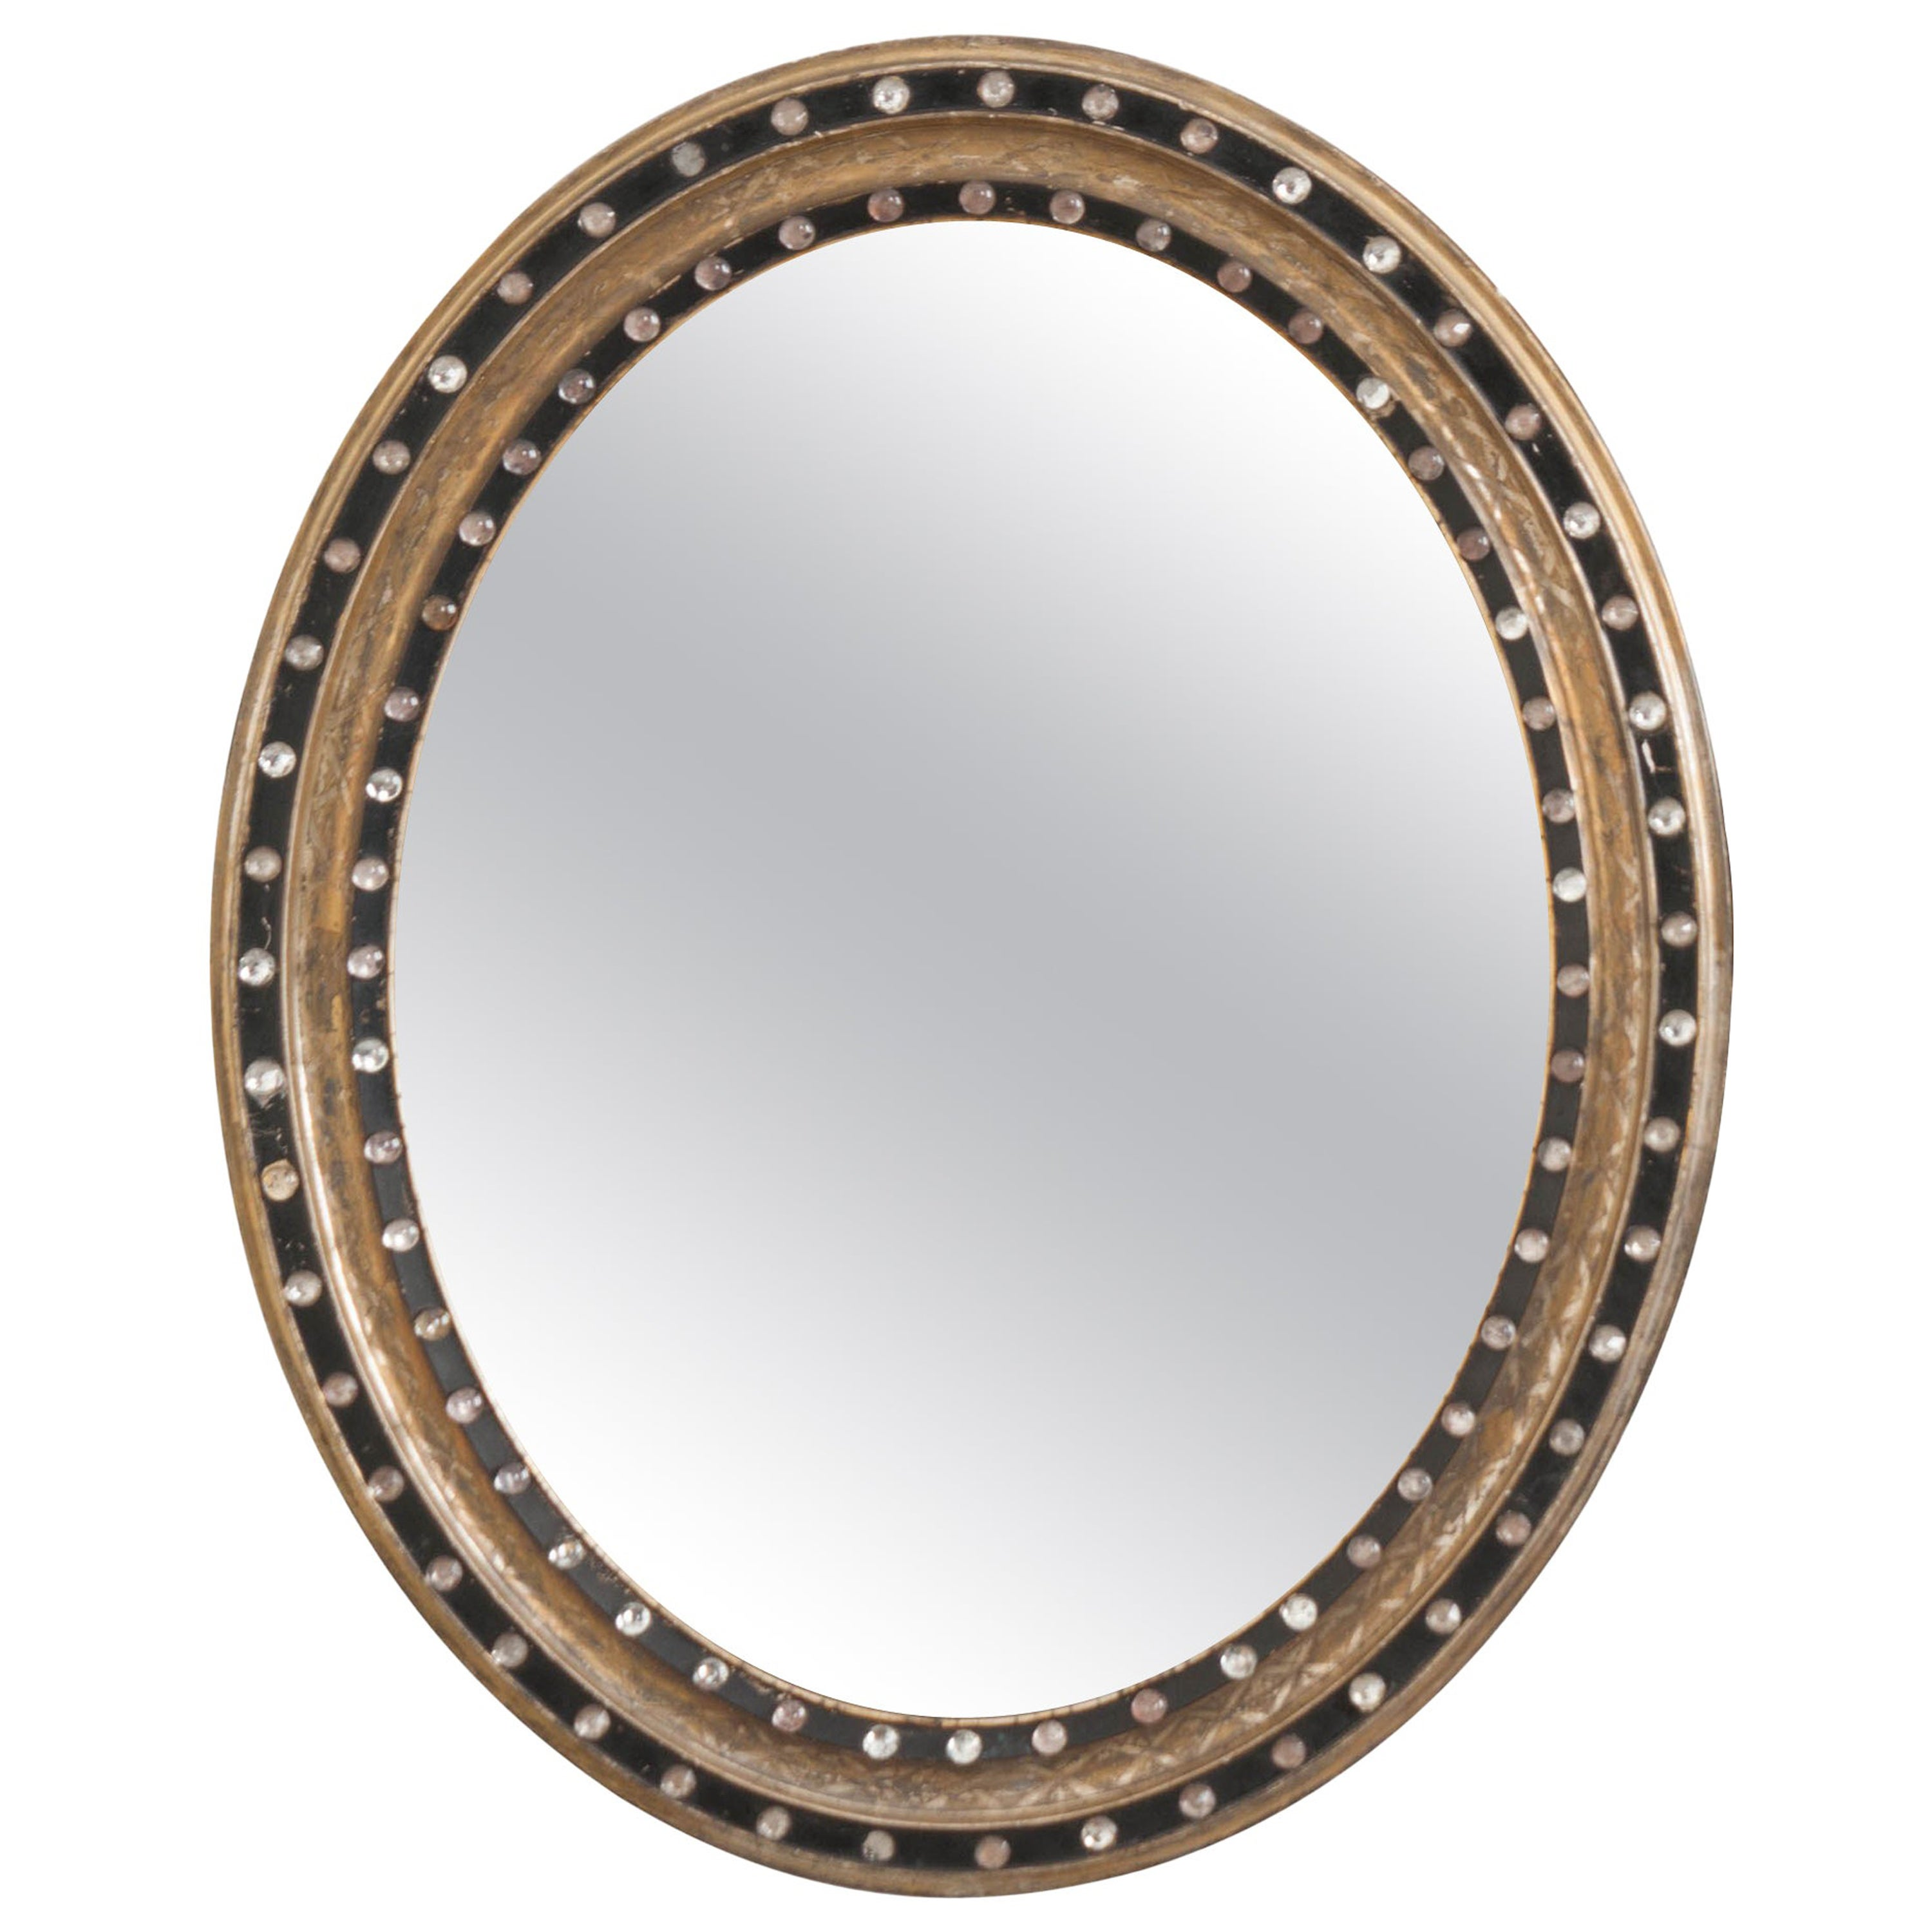 French 19th Century Ebonized and Painted Oval Mirror